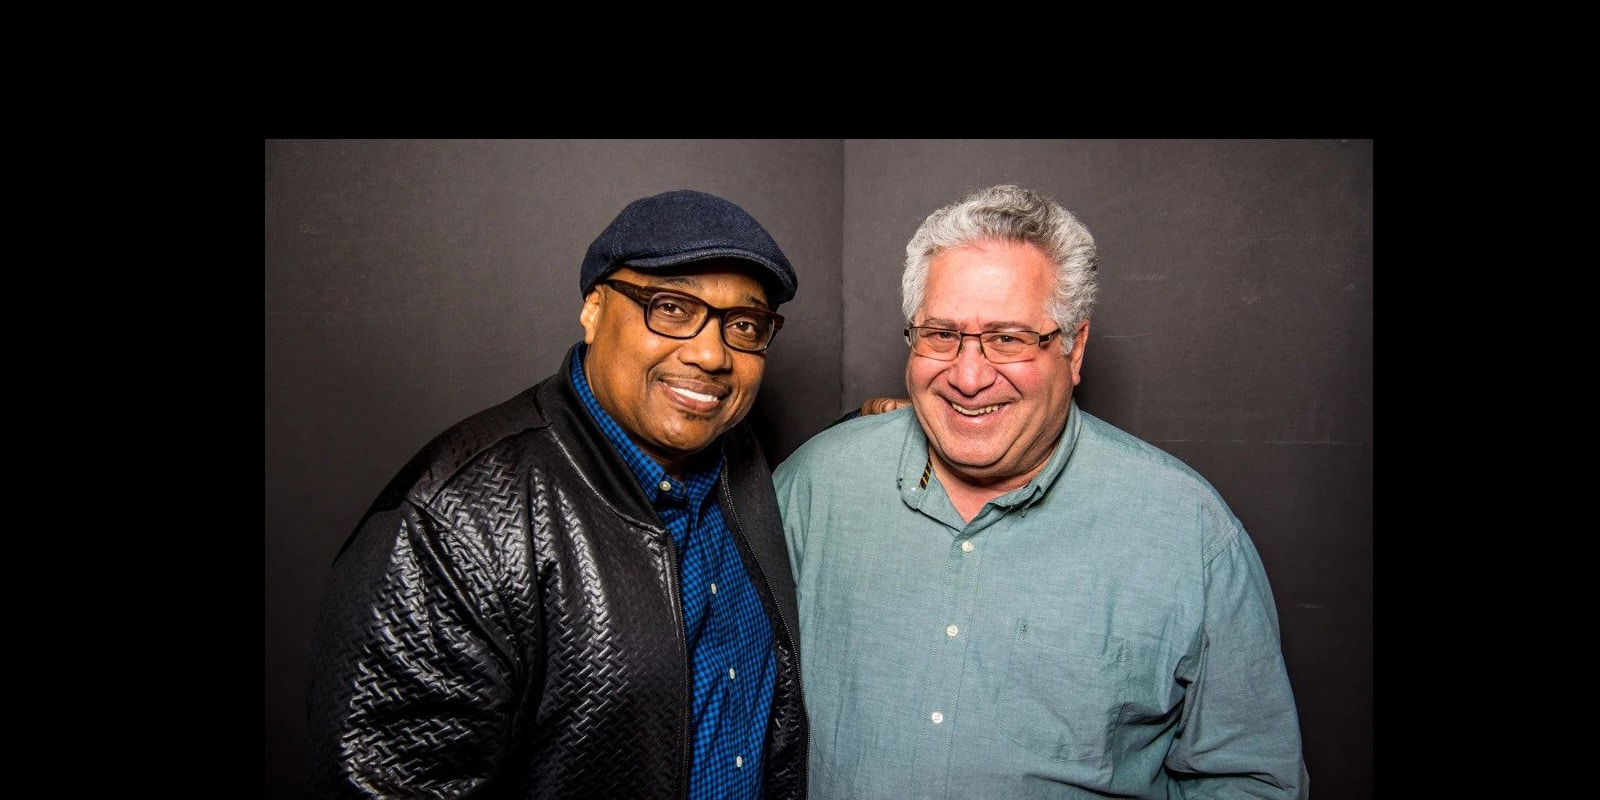 Singer Michael McCowin and Songwriter Kevin Wood